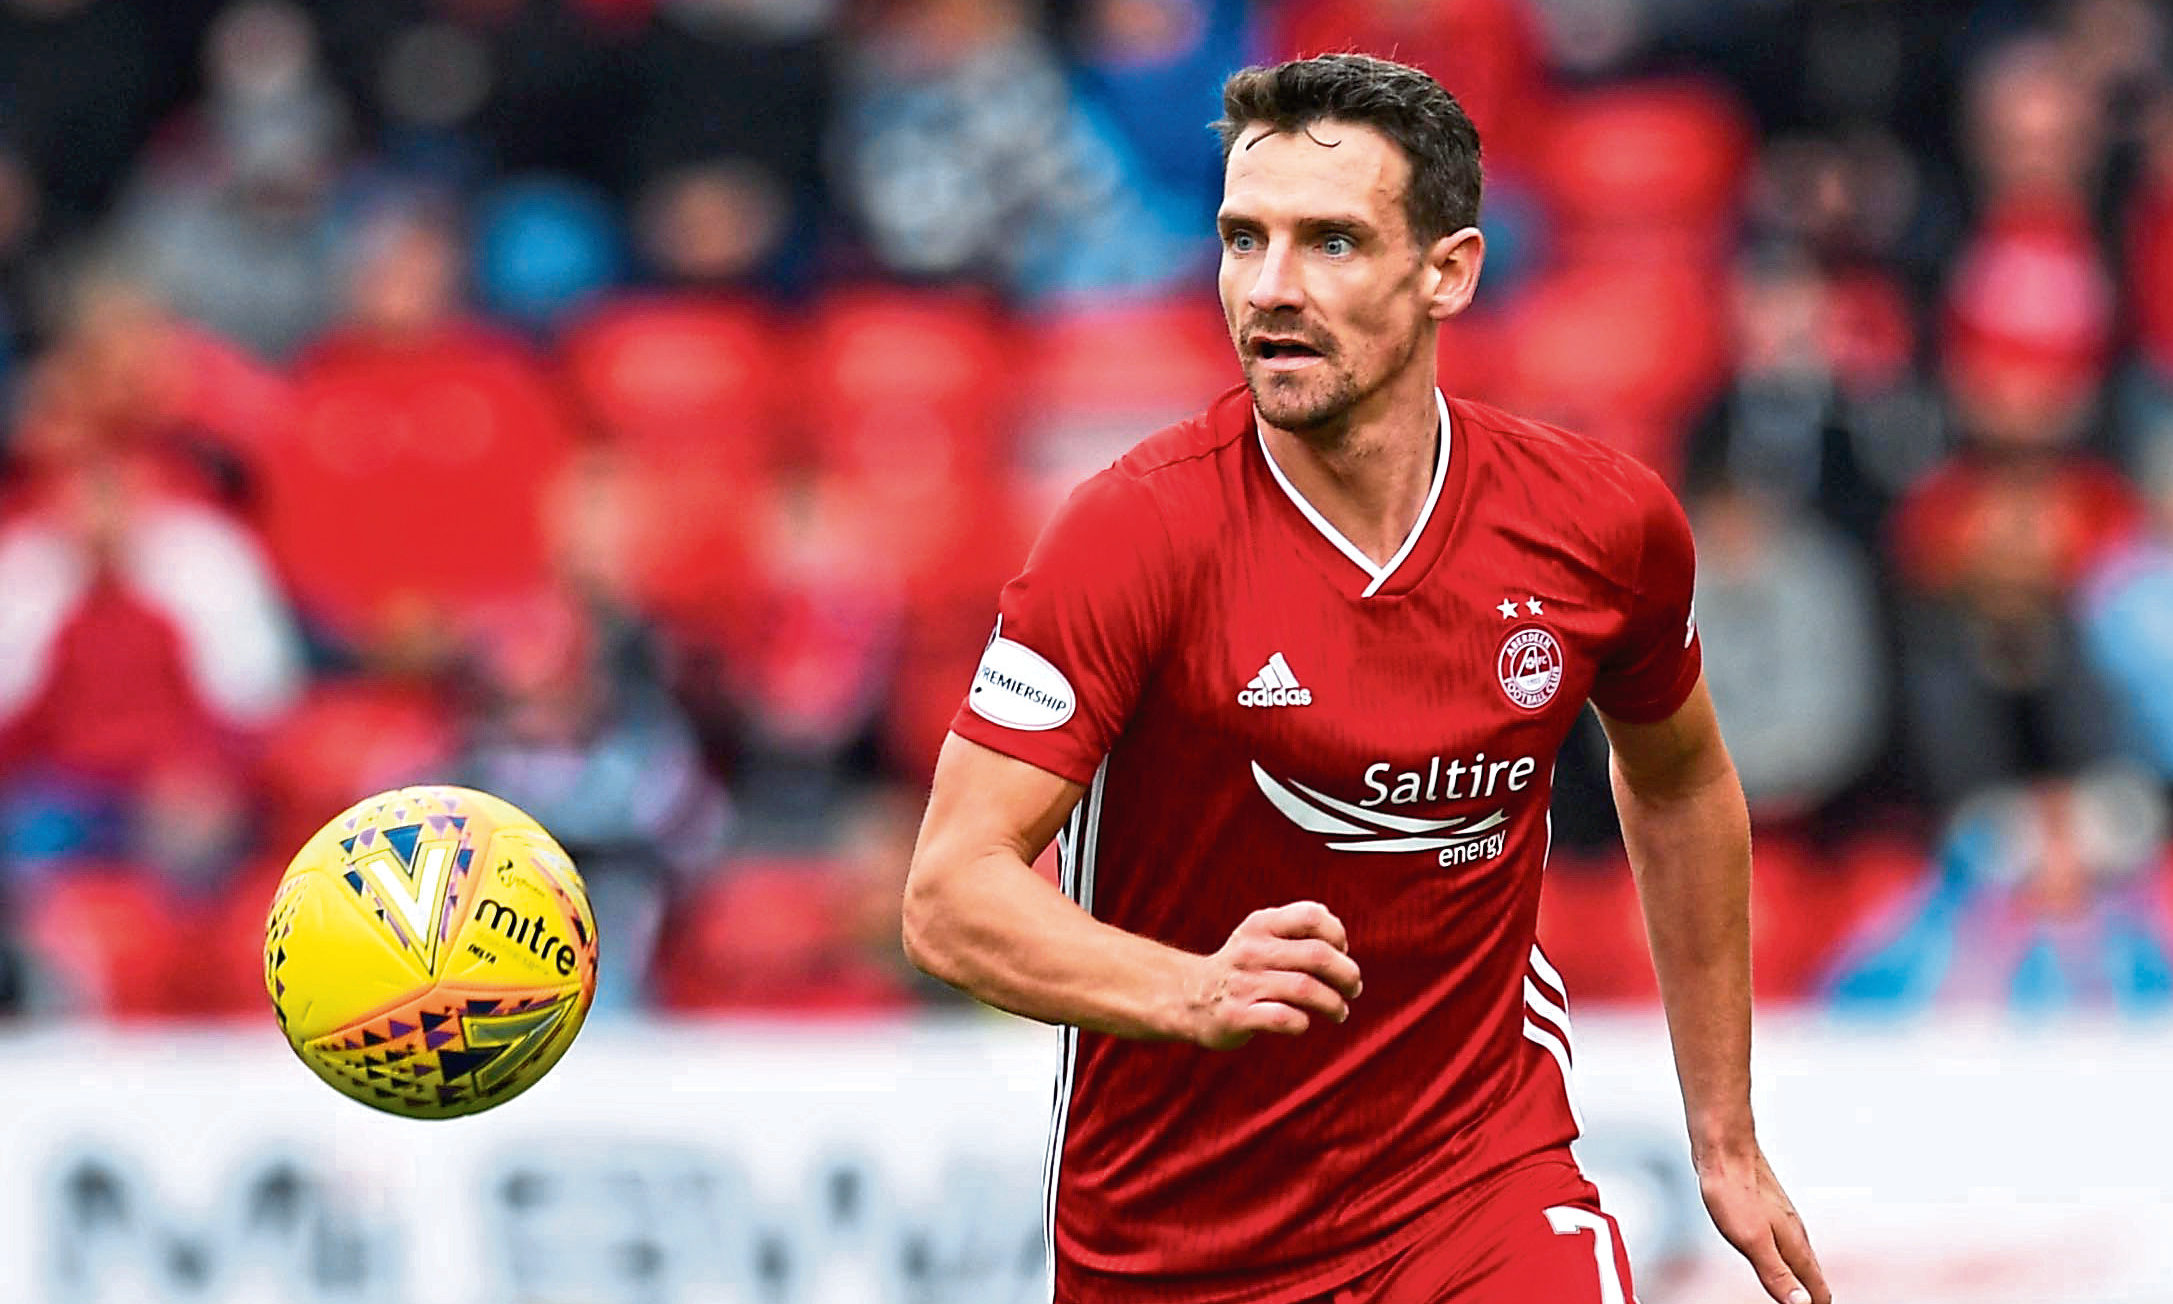 Aberdeen's Craig Bryson in action during the Ladbrokes Premiership match between Aberdeen and Ross County at Pittodrie Stadium on August 31, 2019,